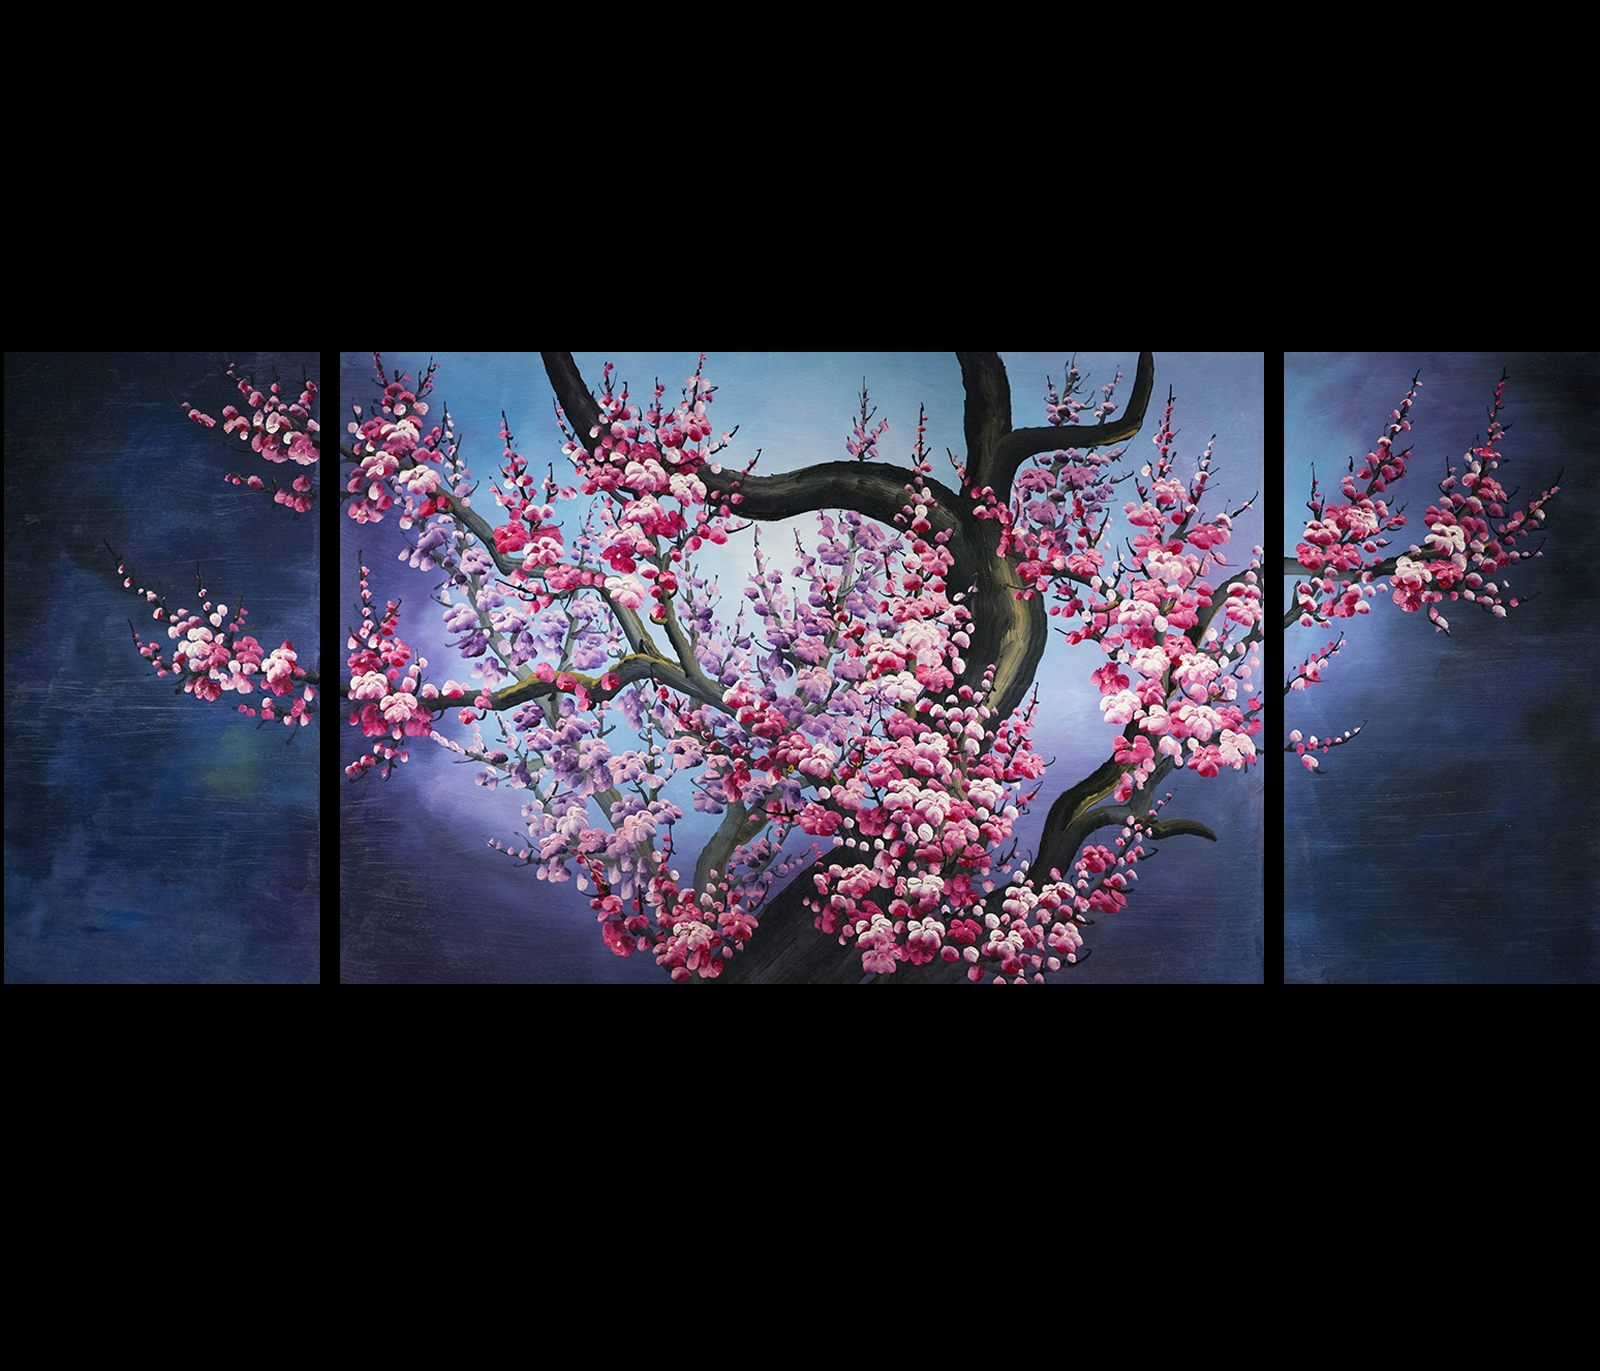 Japanese Cherry Blossom Painting Abstract Art Canvas Wall Art Within 2018 Abstract Cherry Blossom Wall Art (View 2 of 20)